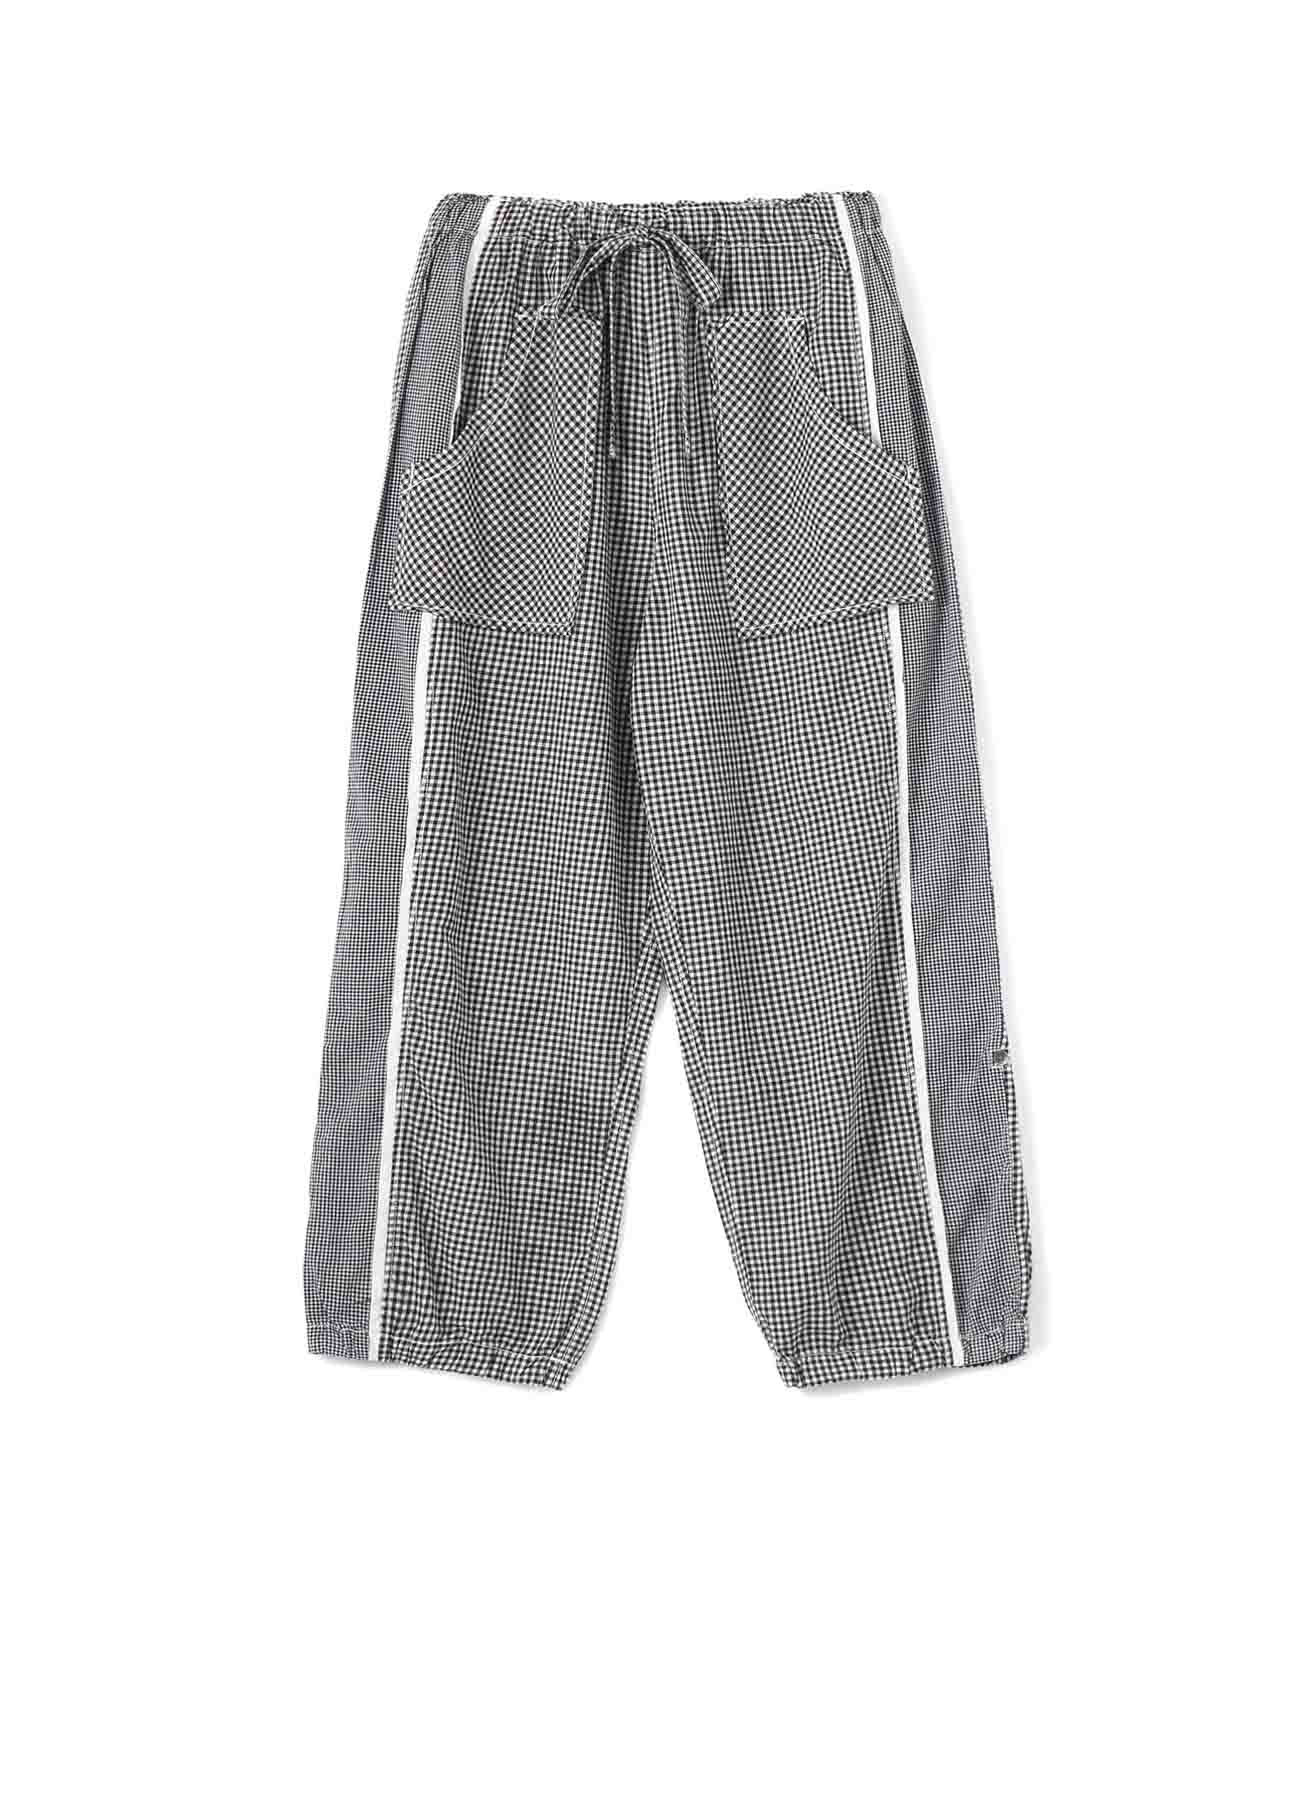 GINGHAM CHECK & COTTON VOILE ROLL UP PANTS